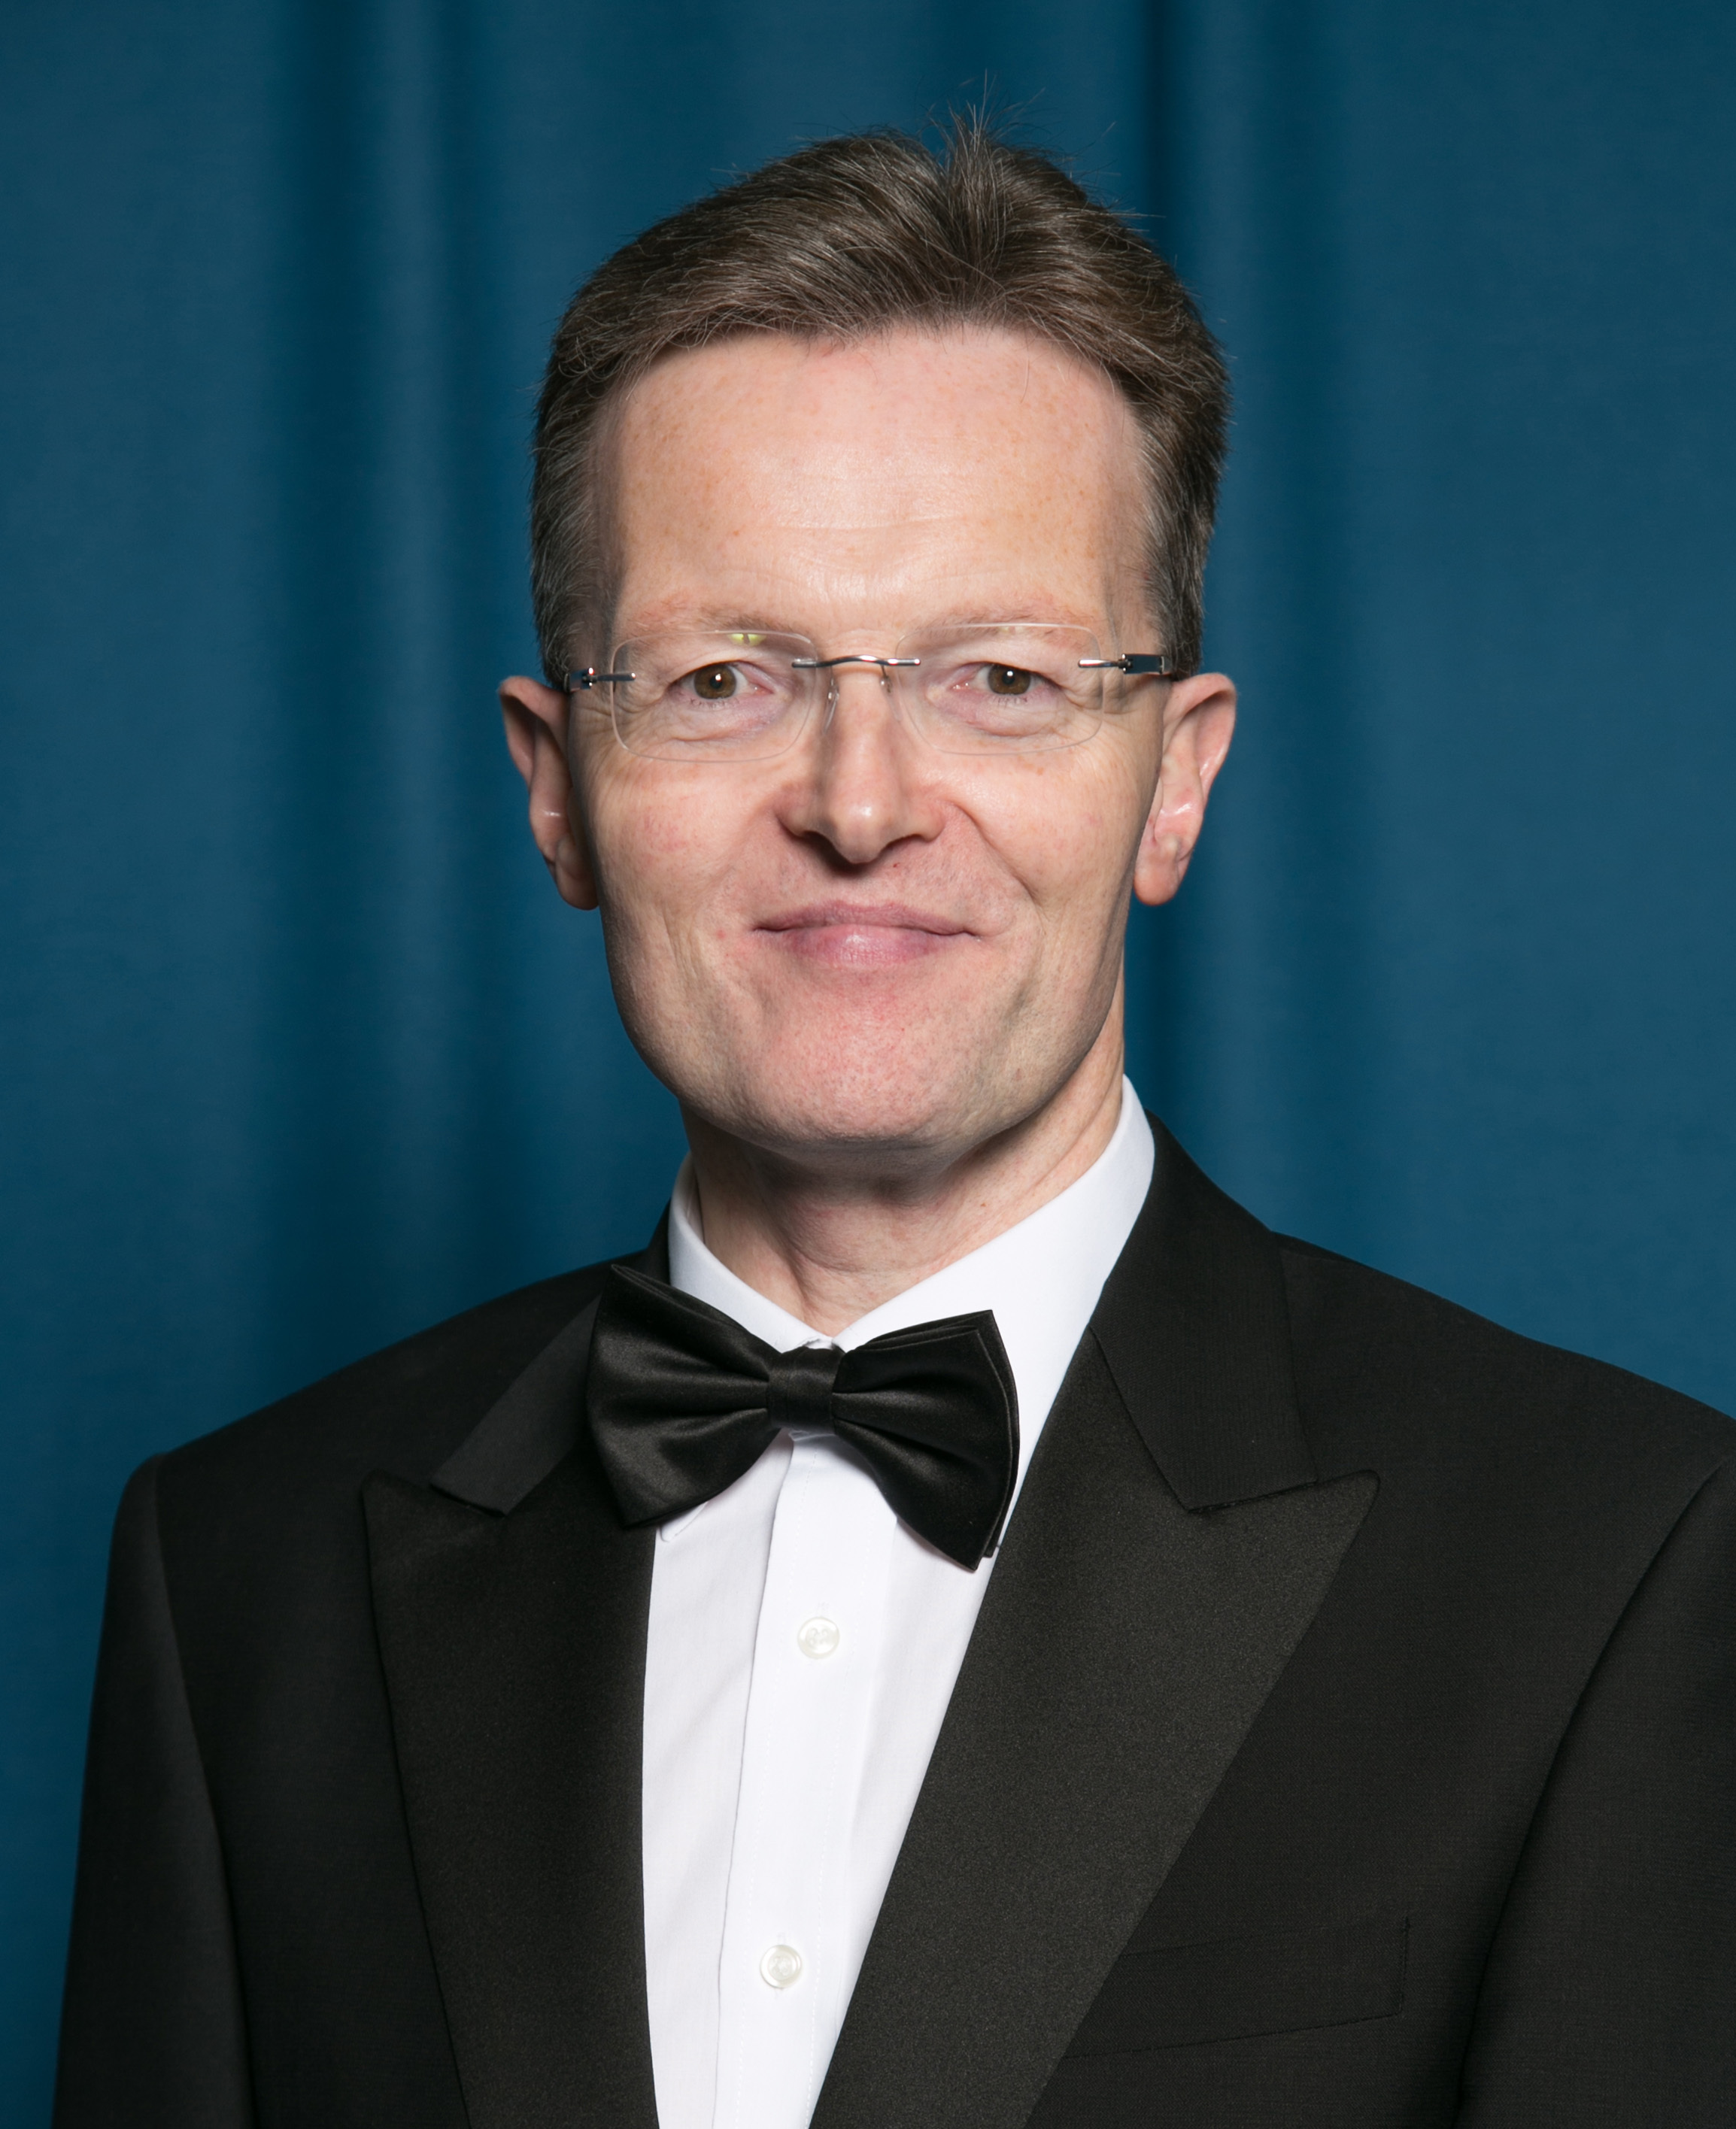 CONDUCTOR: Chris Wormald